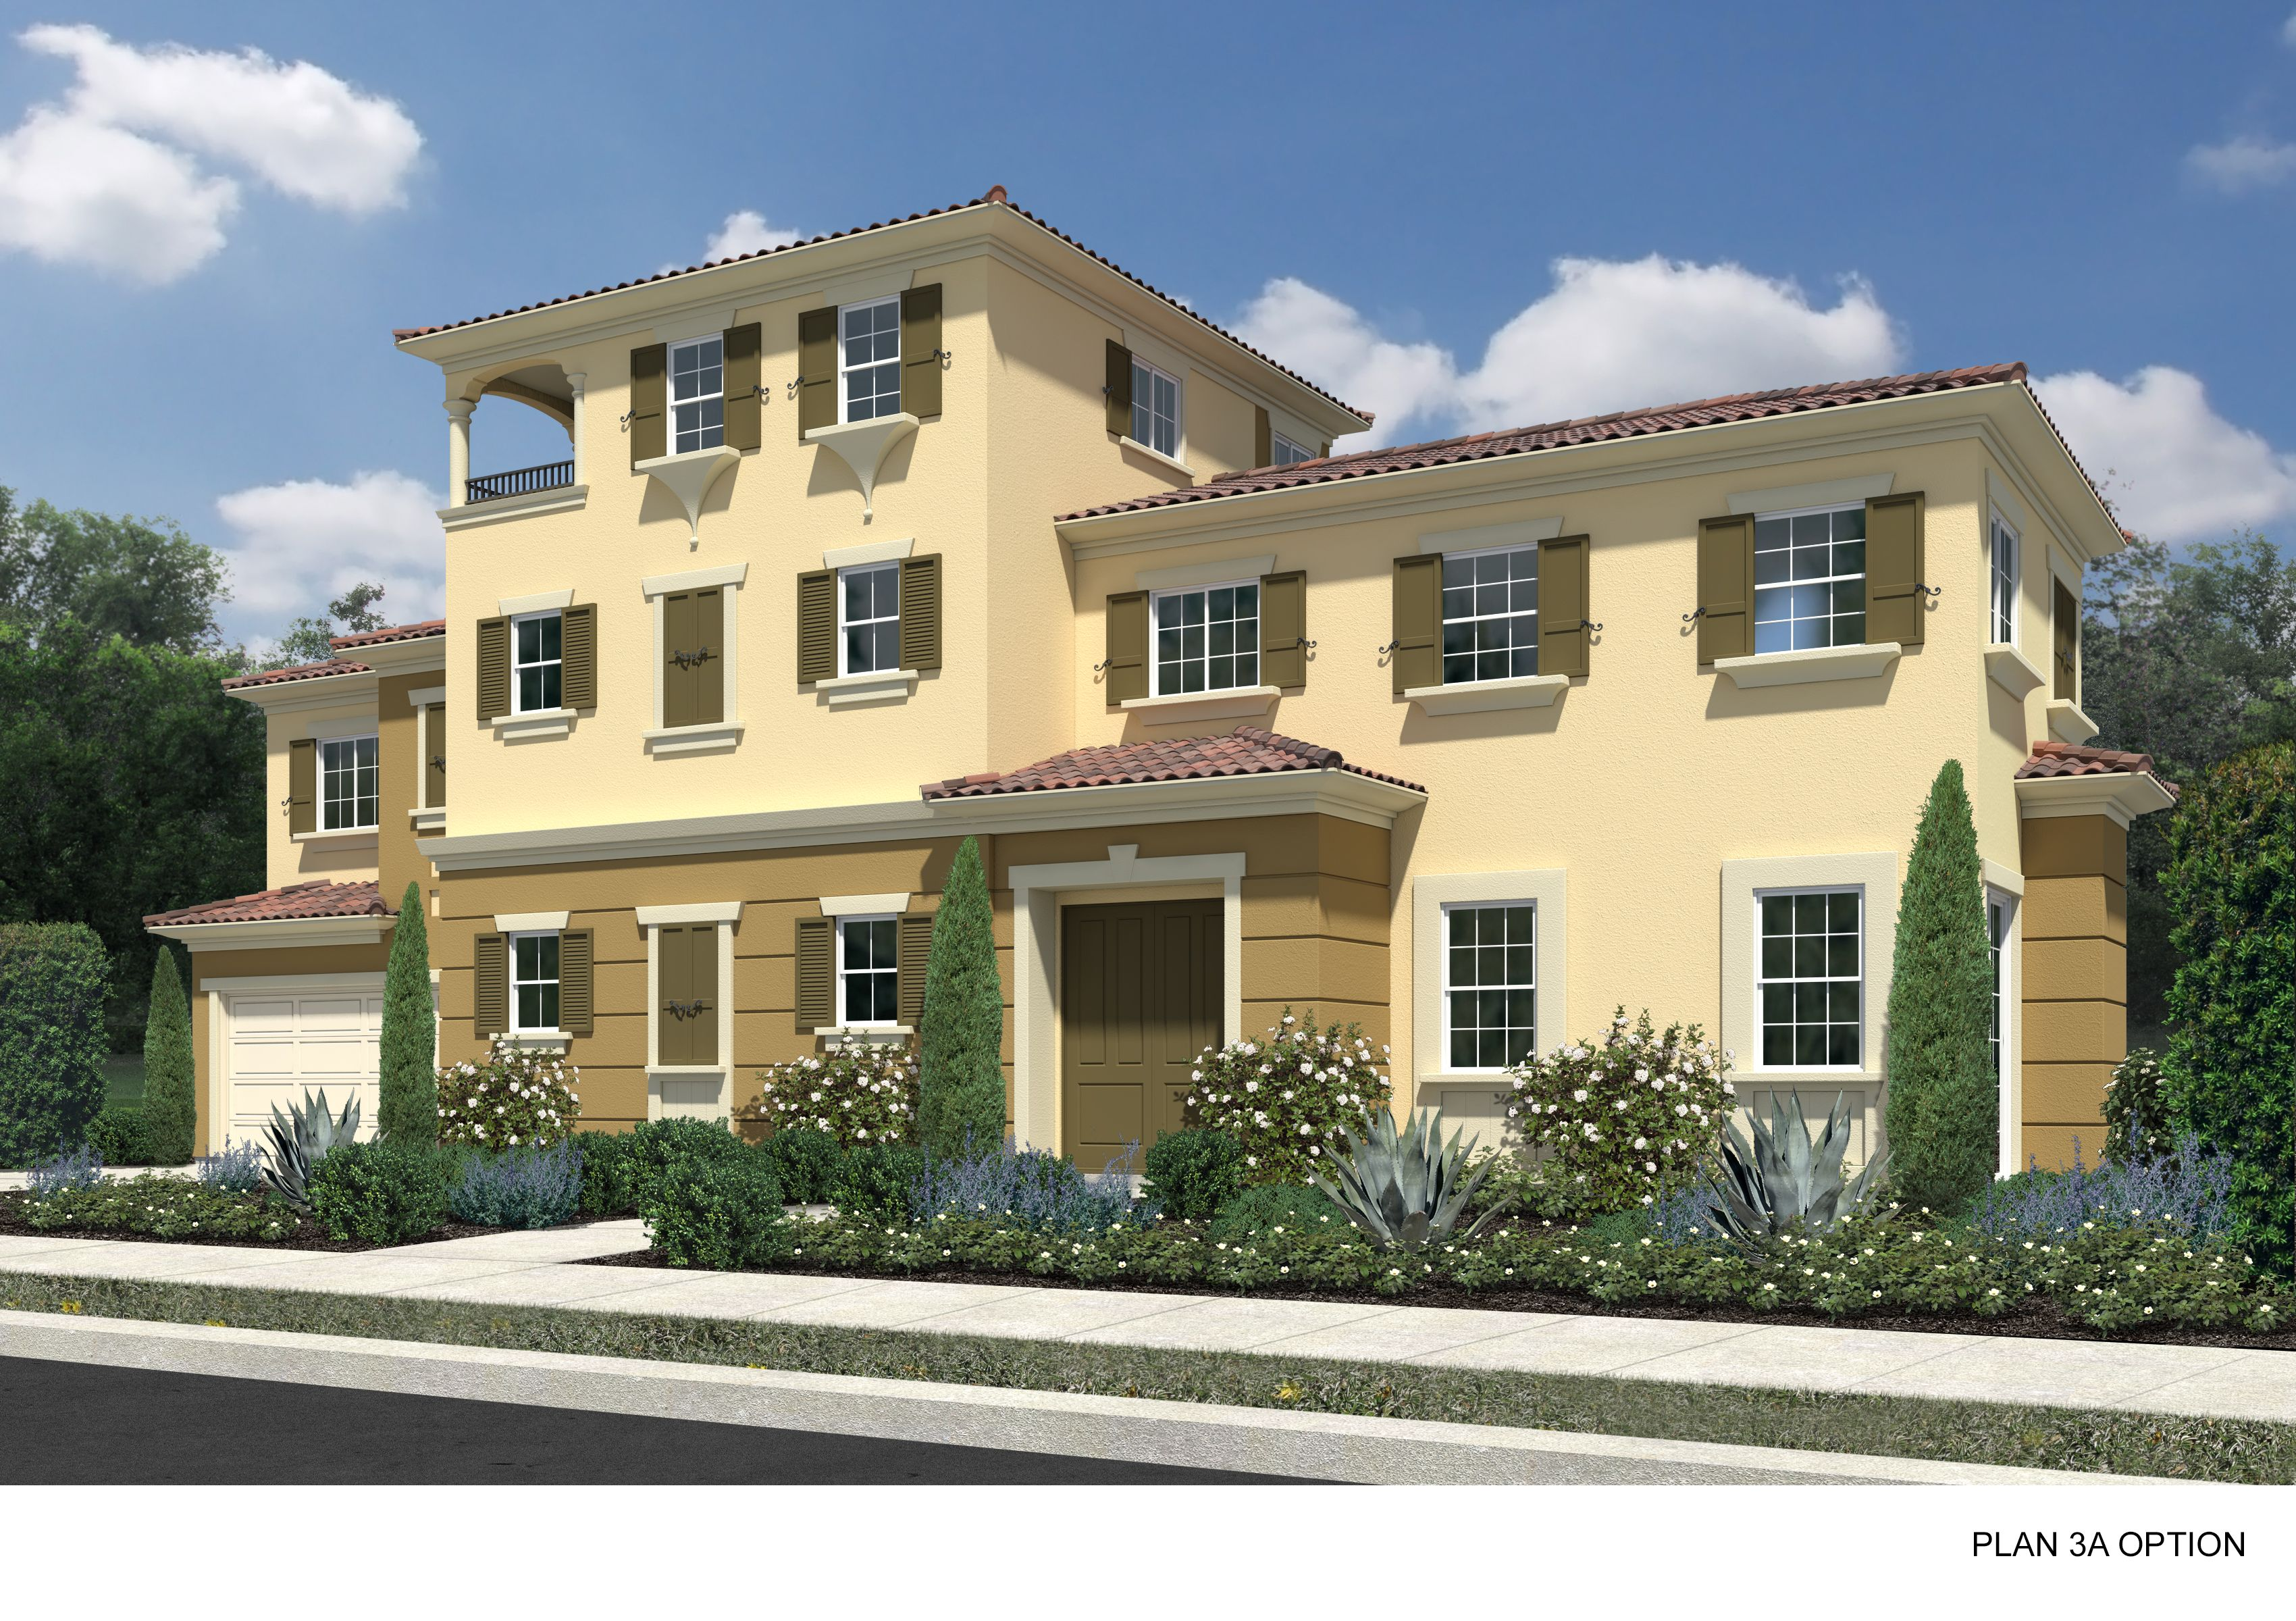 New construction floor plans in los angeles ca for Houses for sale in los angeles area